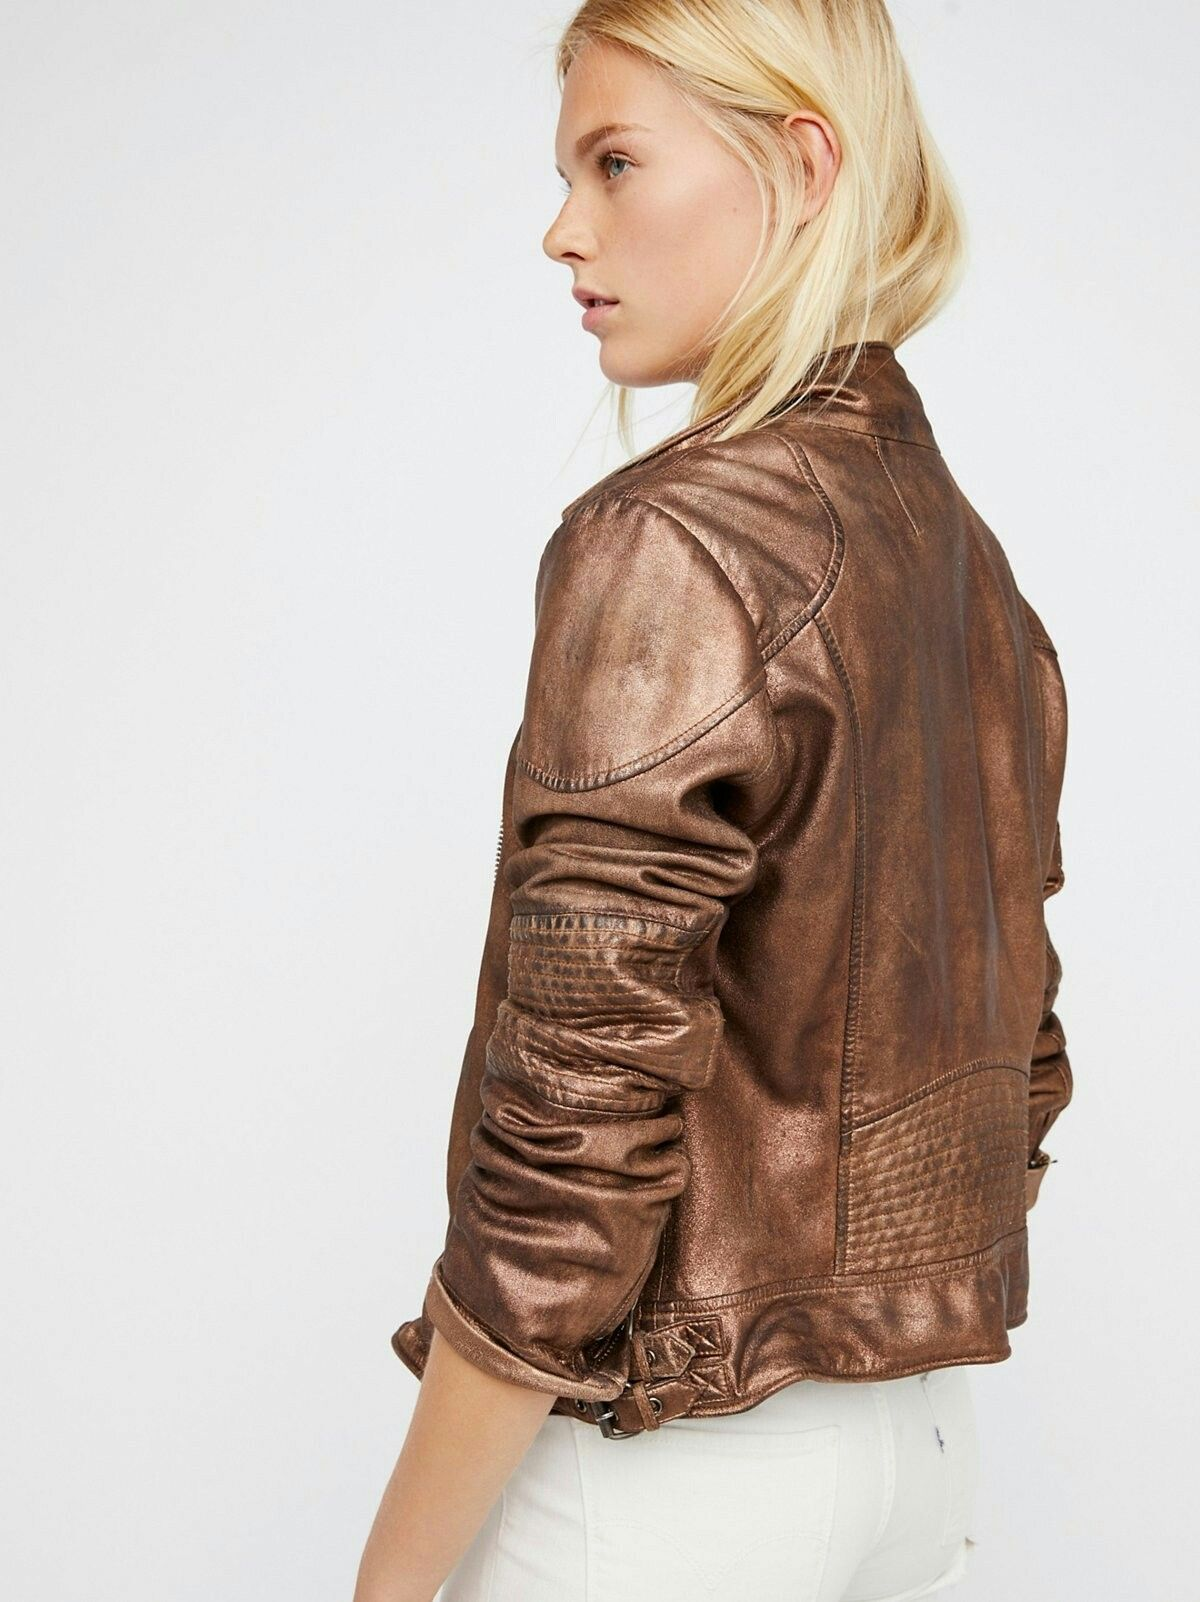 Free People Metallic Bronze Fitted And Rugged Leather Jacket Leather Jacket Jackets Fashion